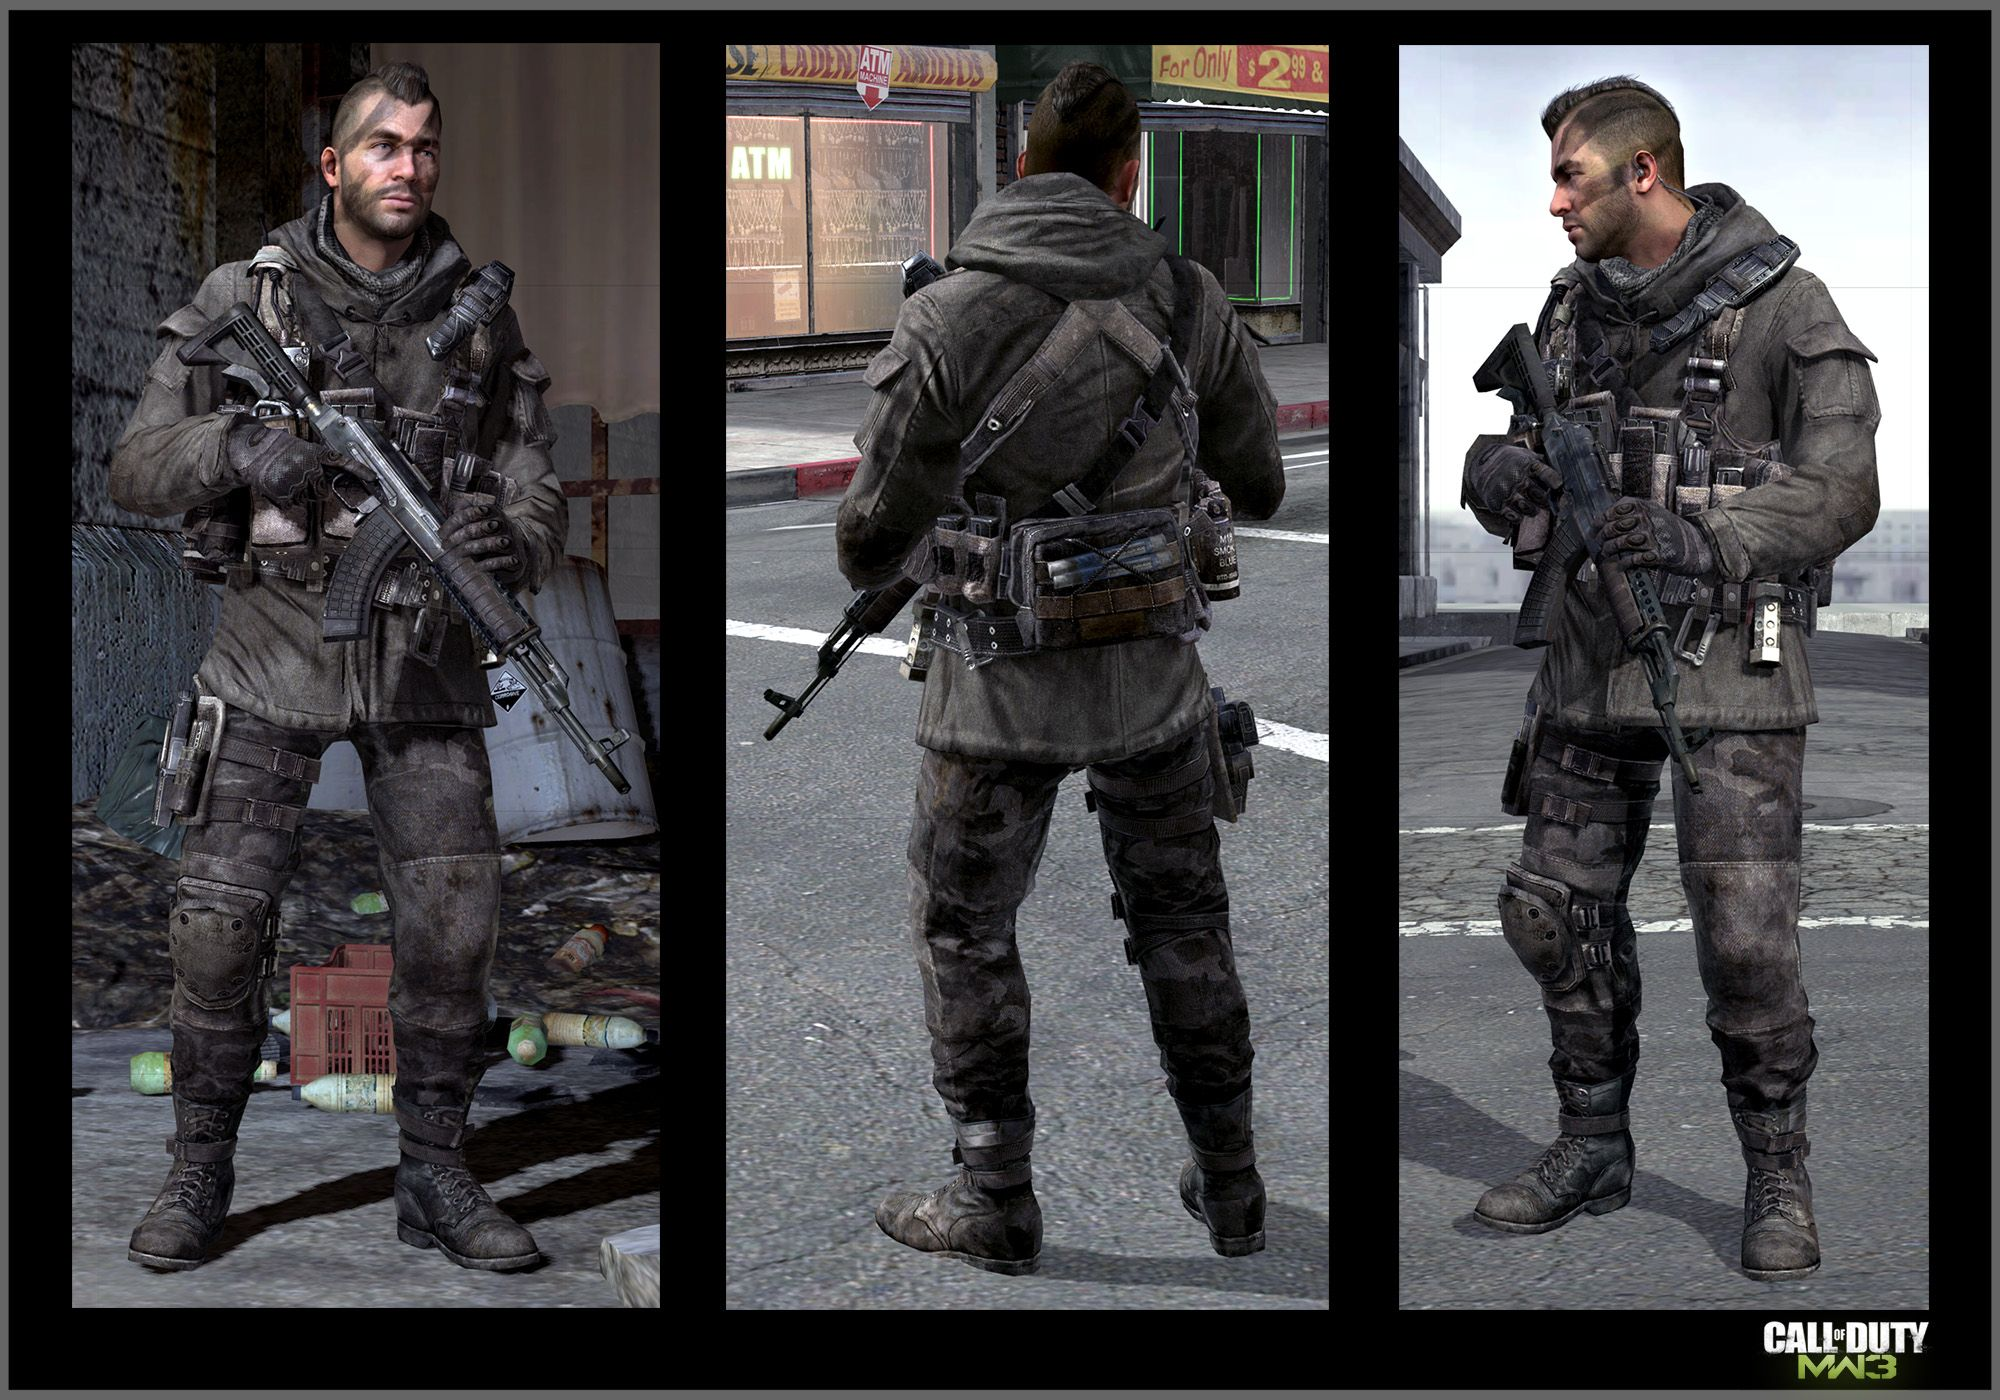 John Soap Mactavish Gallery Call Of Duty Modern Warfare Marketing Images